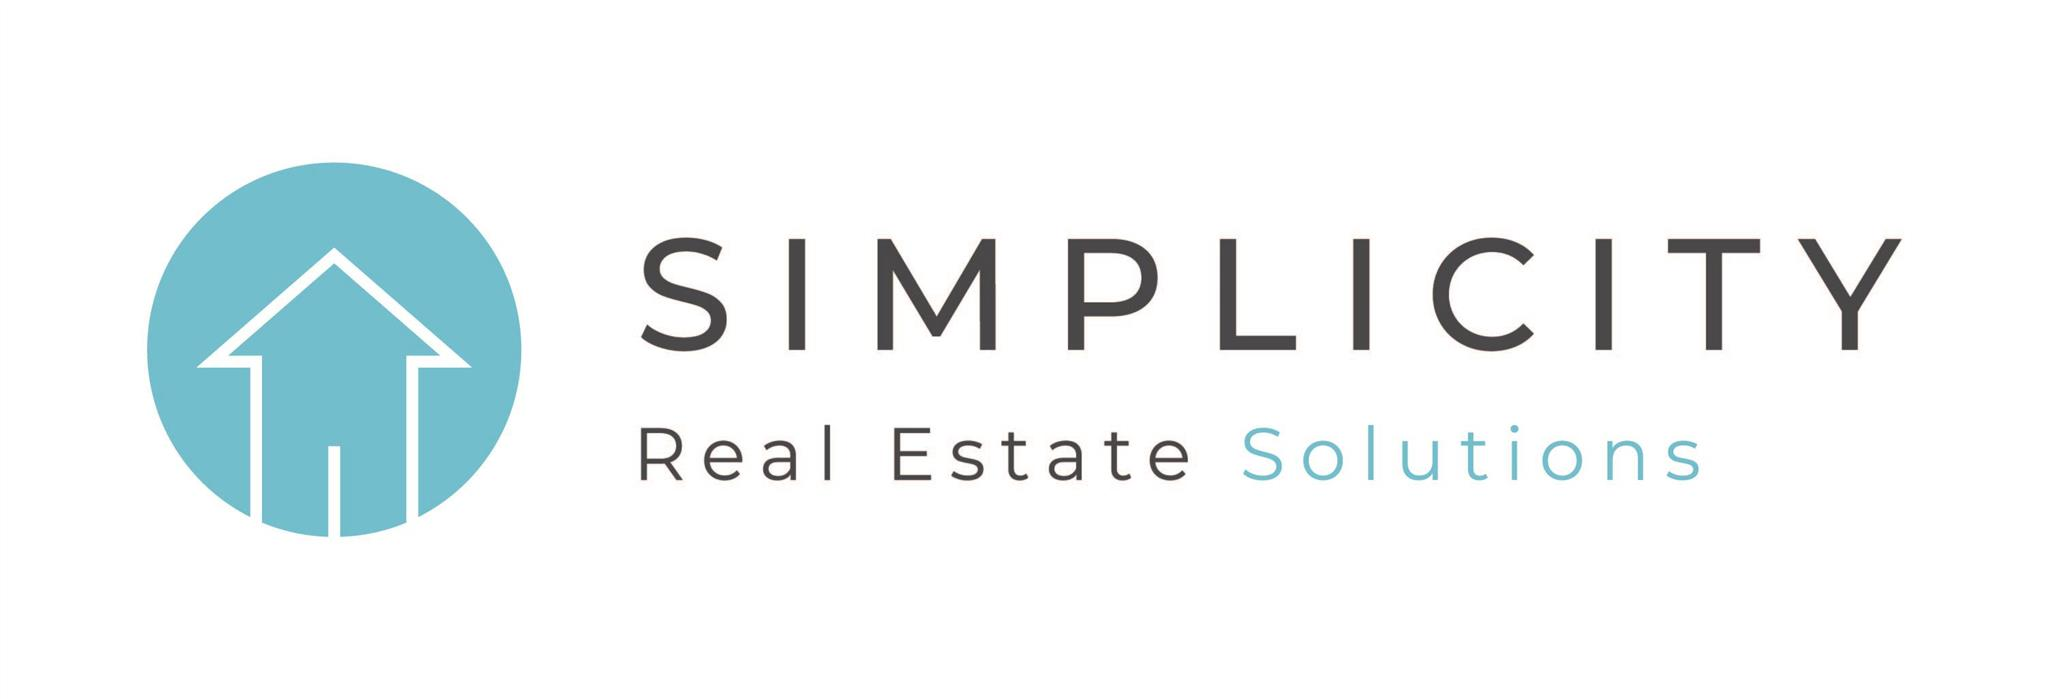 Simplicity Real Estate Solutions